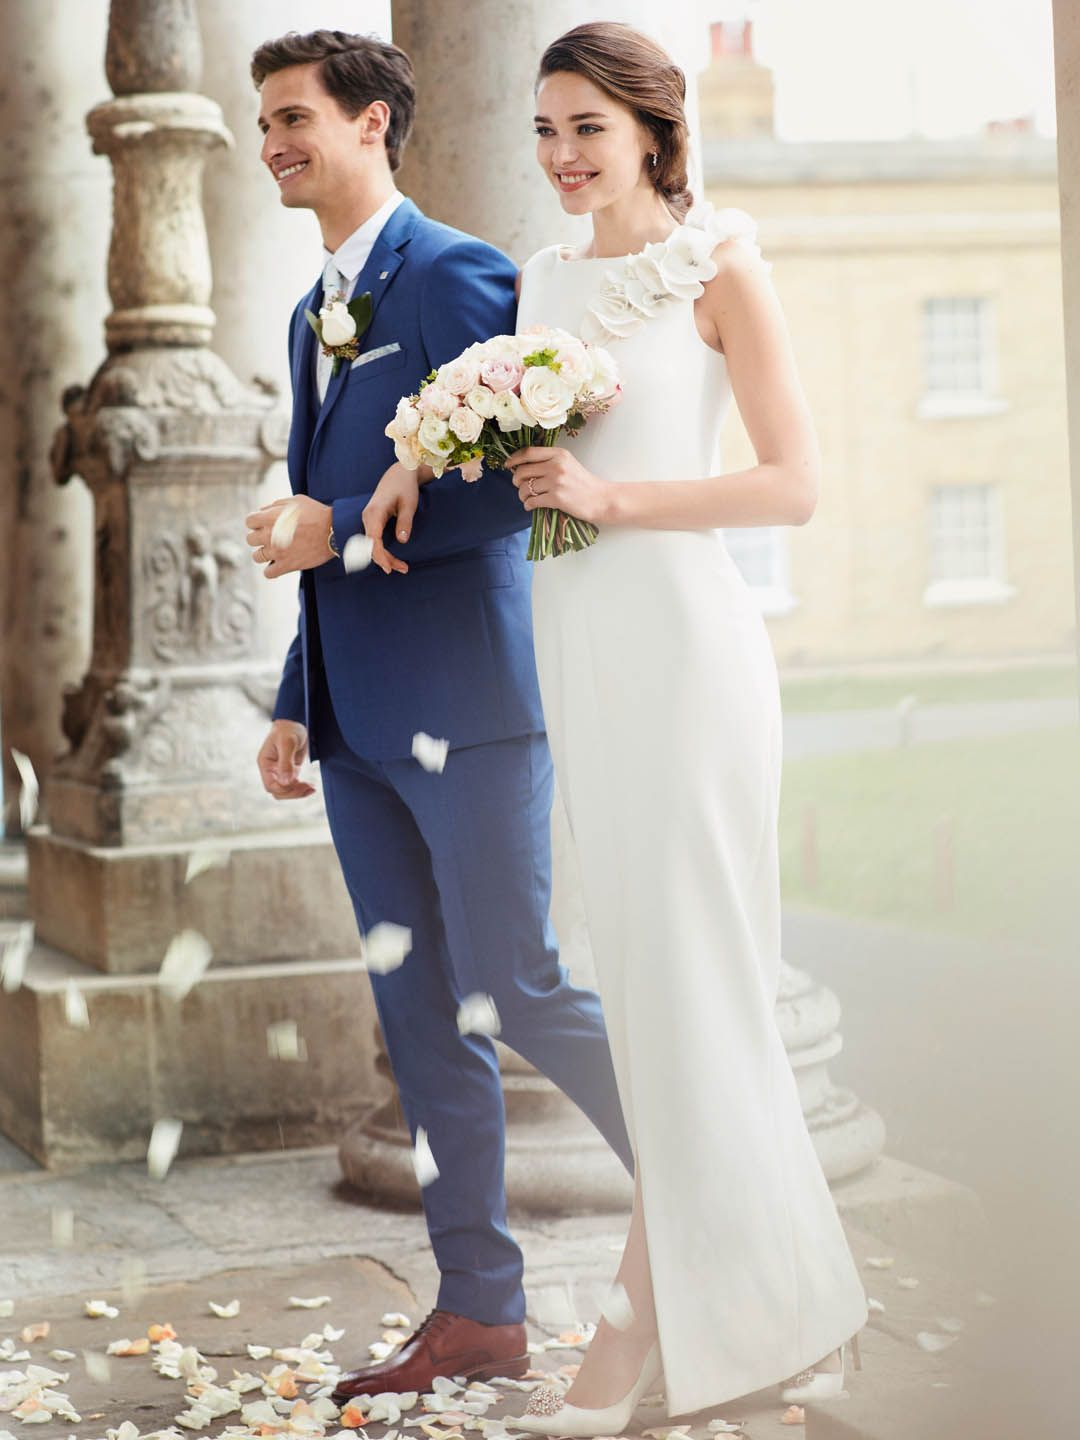 Bridal Gown Ted S Britley Wedding Dress Is Simple And Elegant With Statement Shoulder Detai Simple Wedding Gowns Bridal Dresses Vintage Amazing Wedding Dress